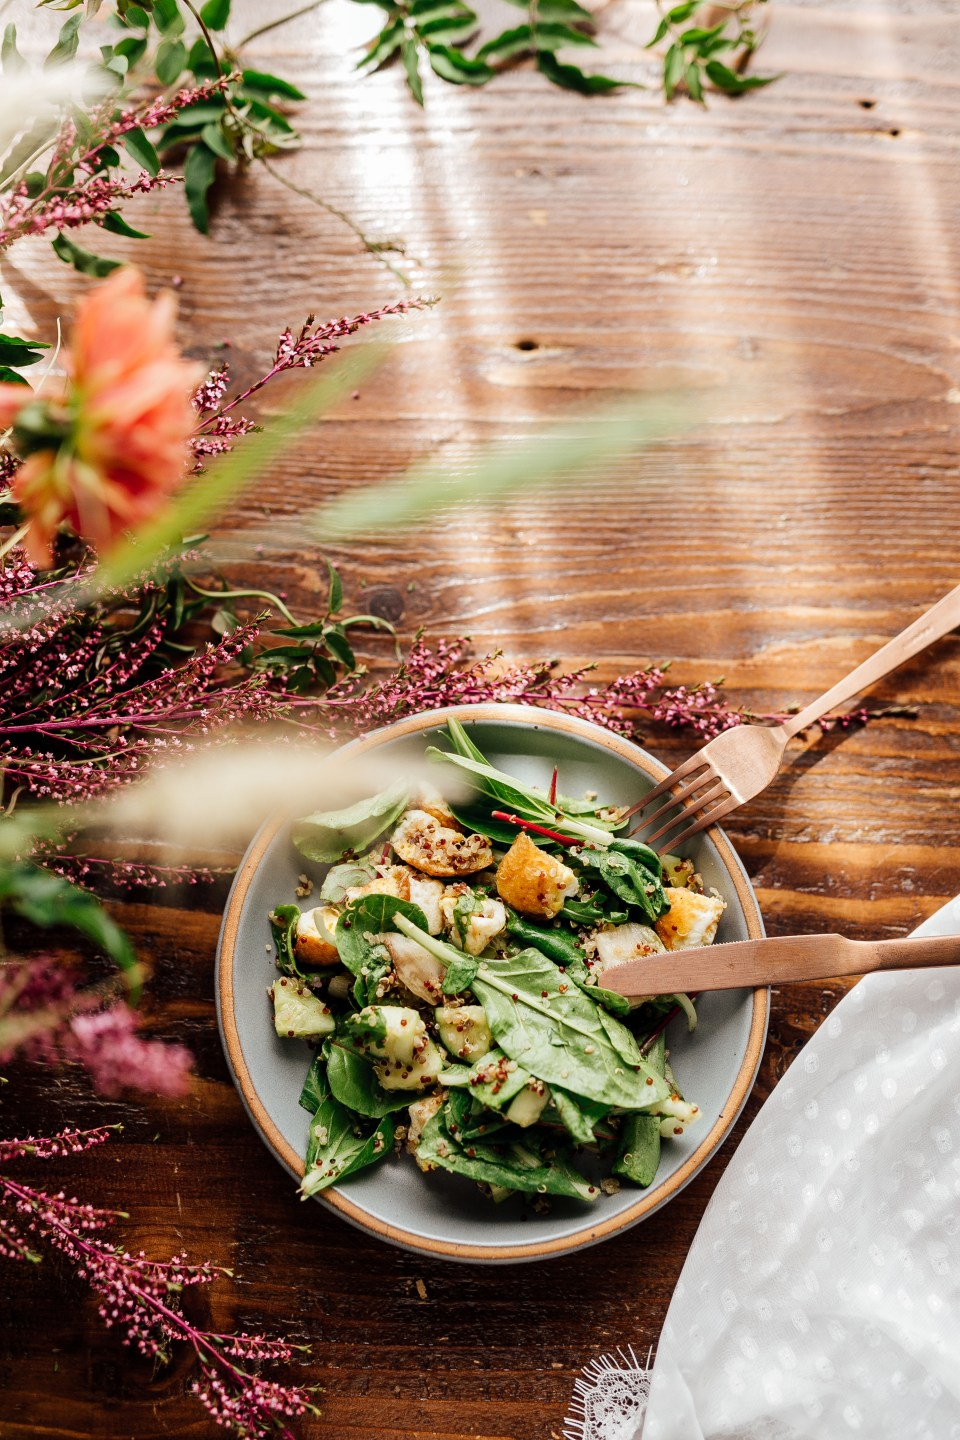 Overhead shot of salad on plate on wooden table